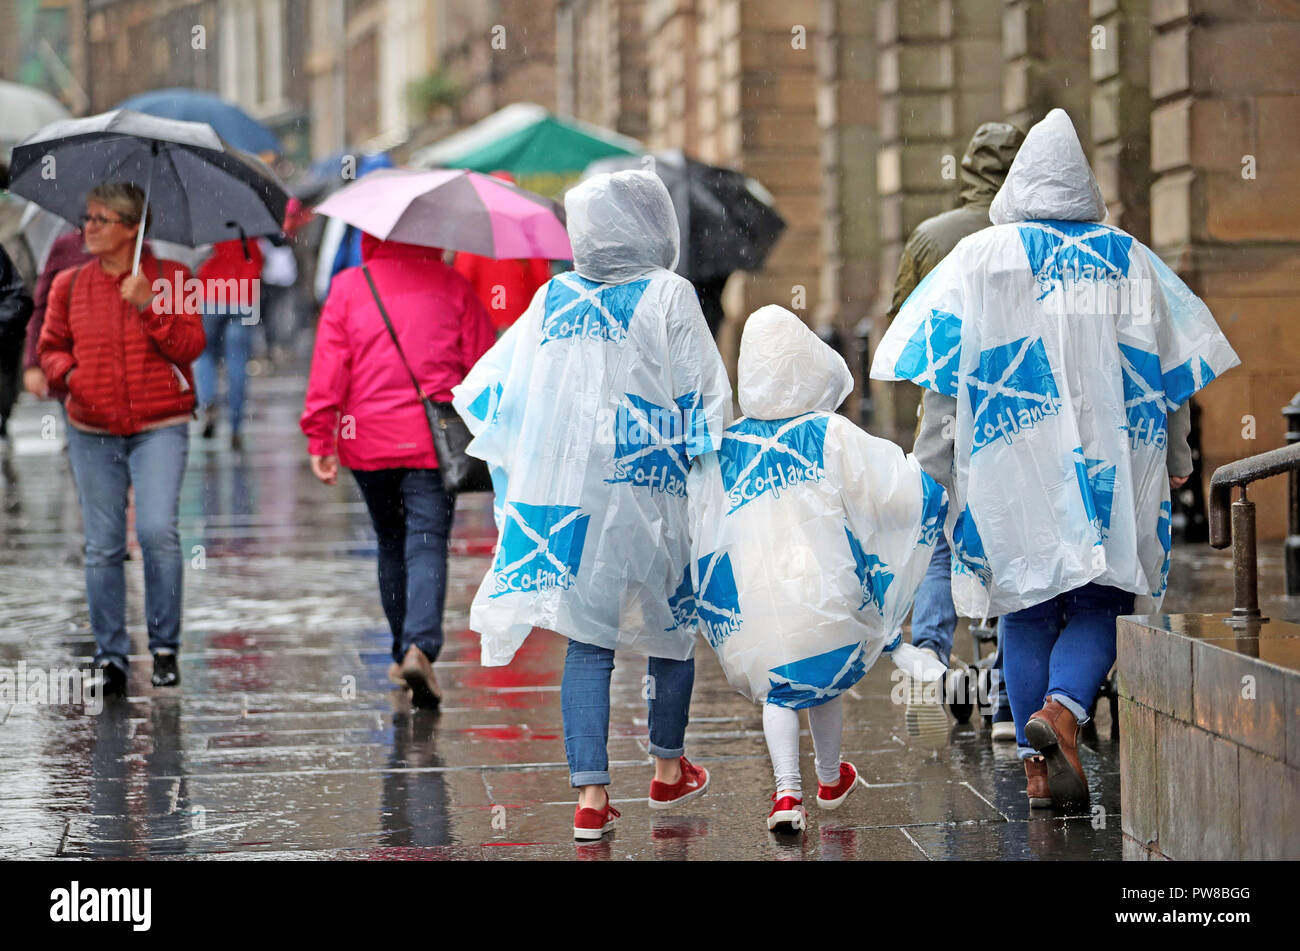 Tourists wearing emergency ponchos on Edinburgh's Royal Mile. - Stock Image